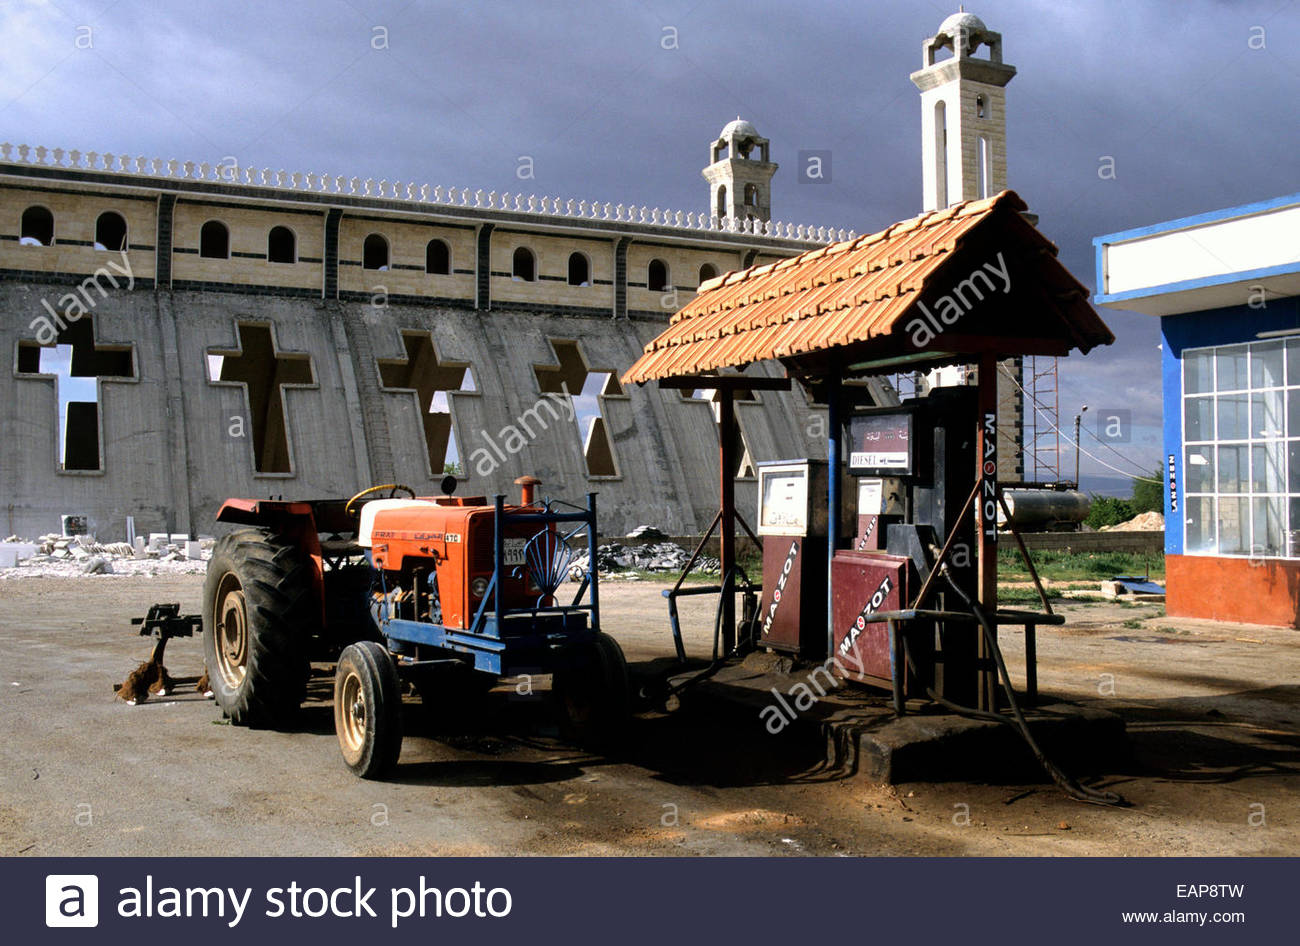 A gas pump station in front of a church, Homs, Syria. - Stock Image